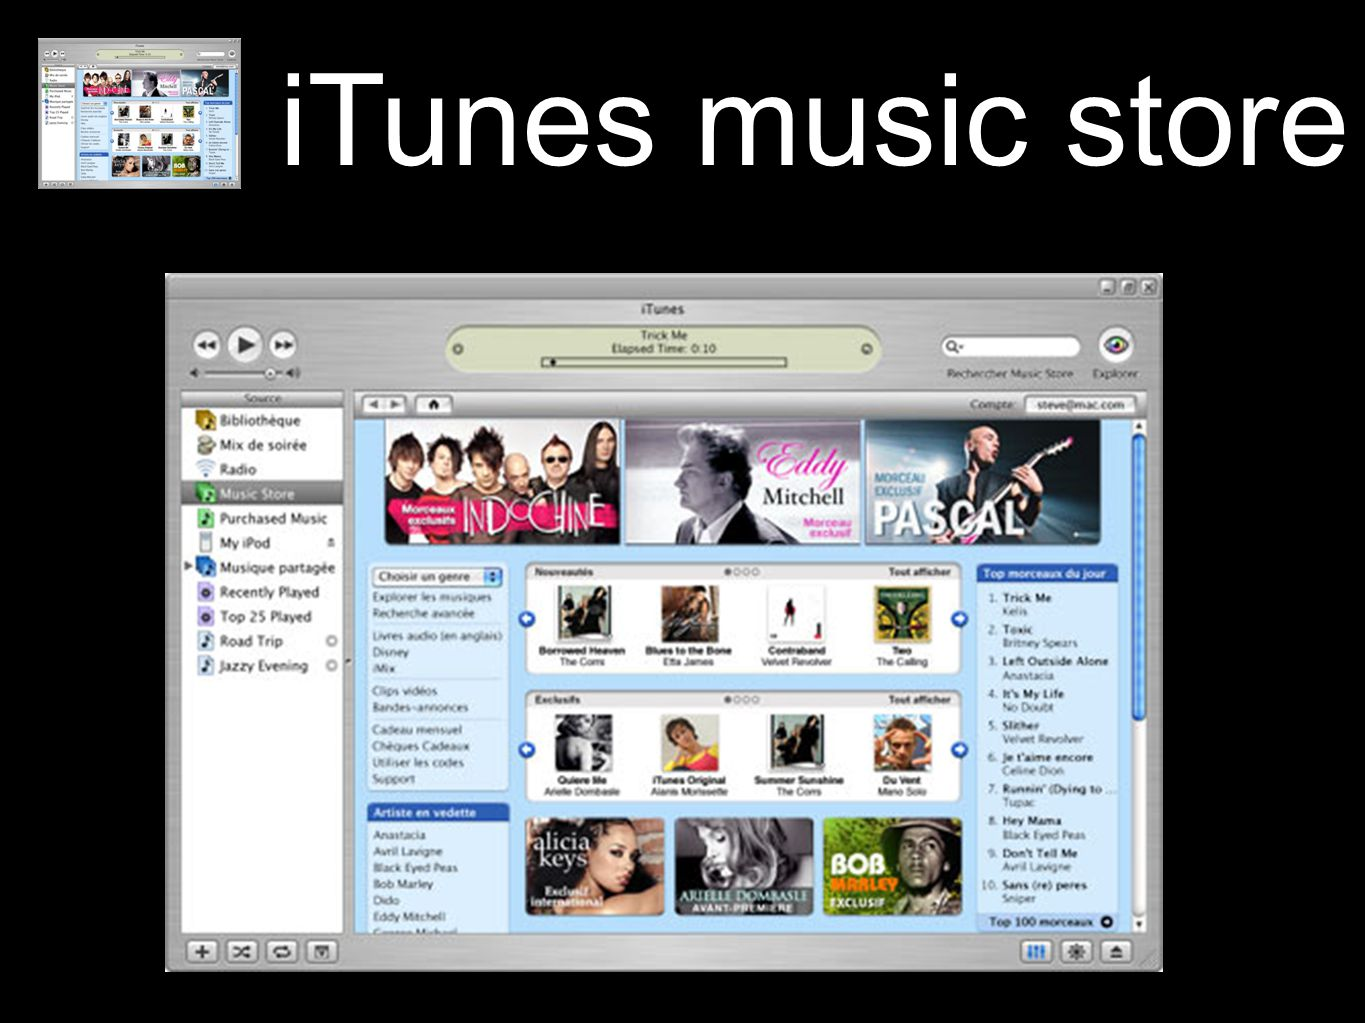 iTunes music store In Sync with iTunes.